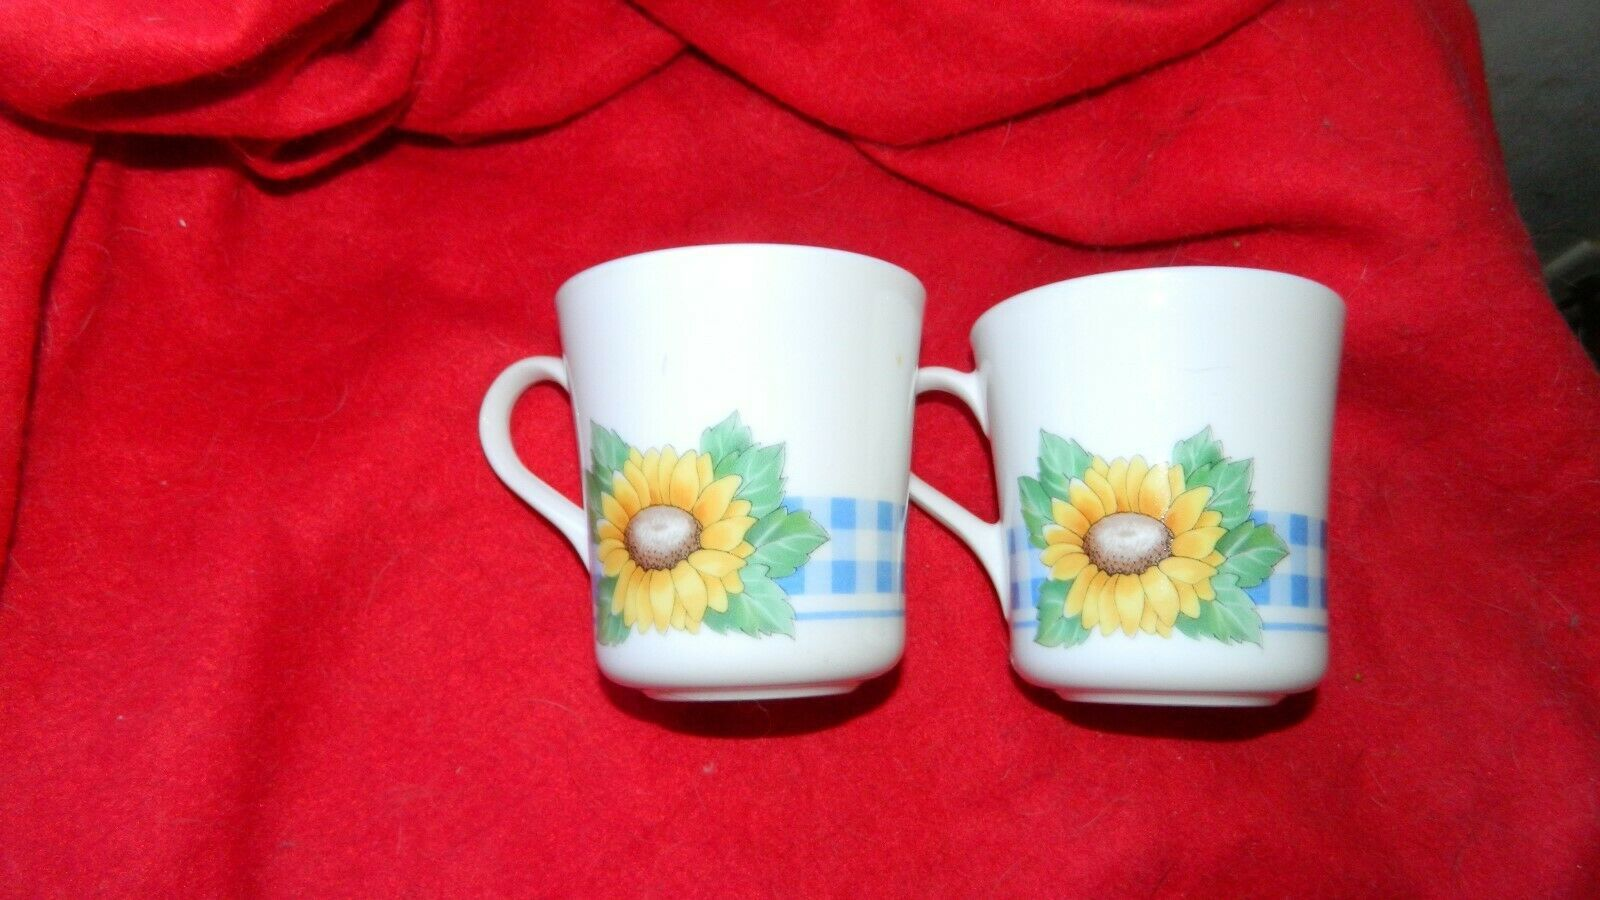 Primary image for CORELLE SUNSATIONS COFFEE CUPS x 2 GENTLY USED CONDITION FREE USA SHIPPING